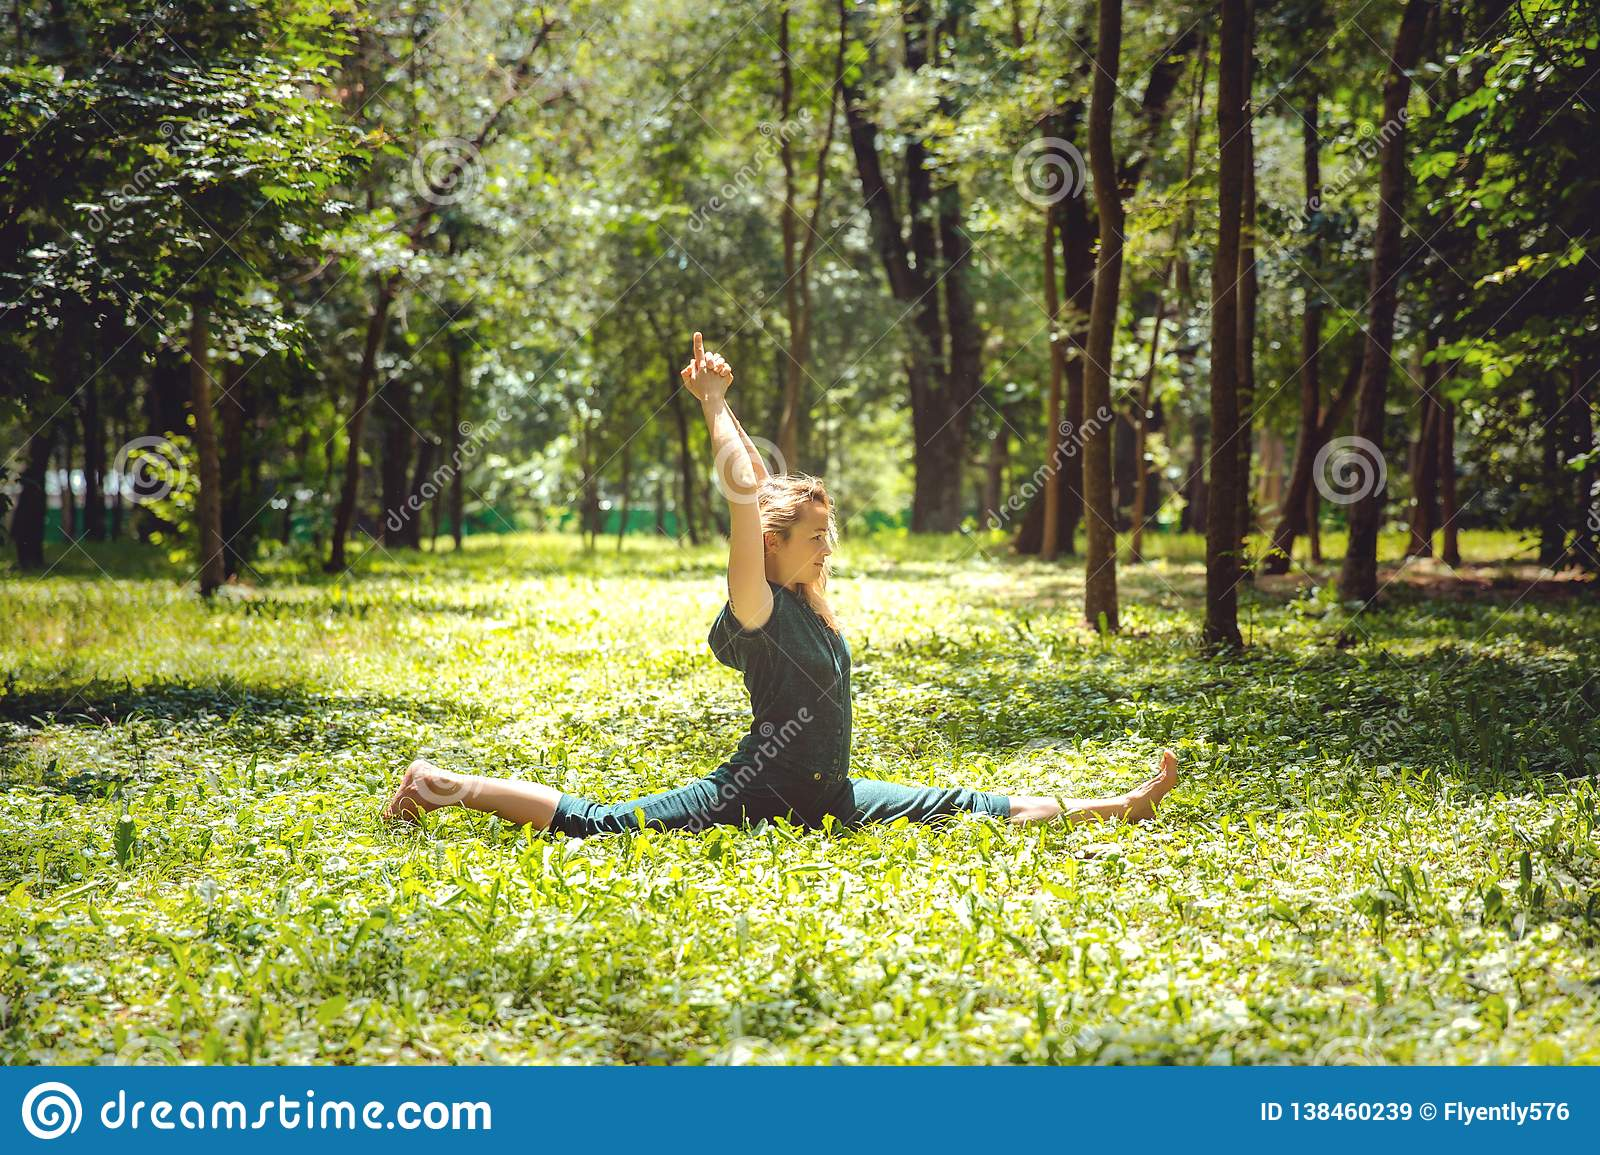 Hanumanasana. Yoga Asanas In Nature. Yoga Poses Everyday